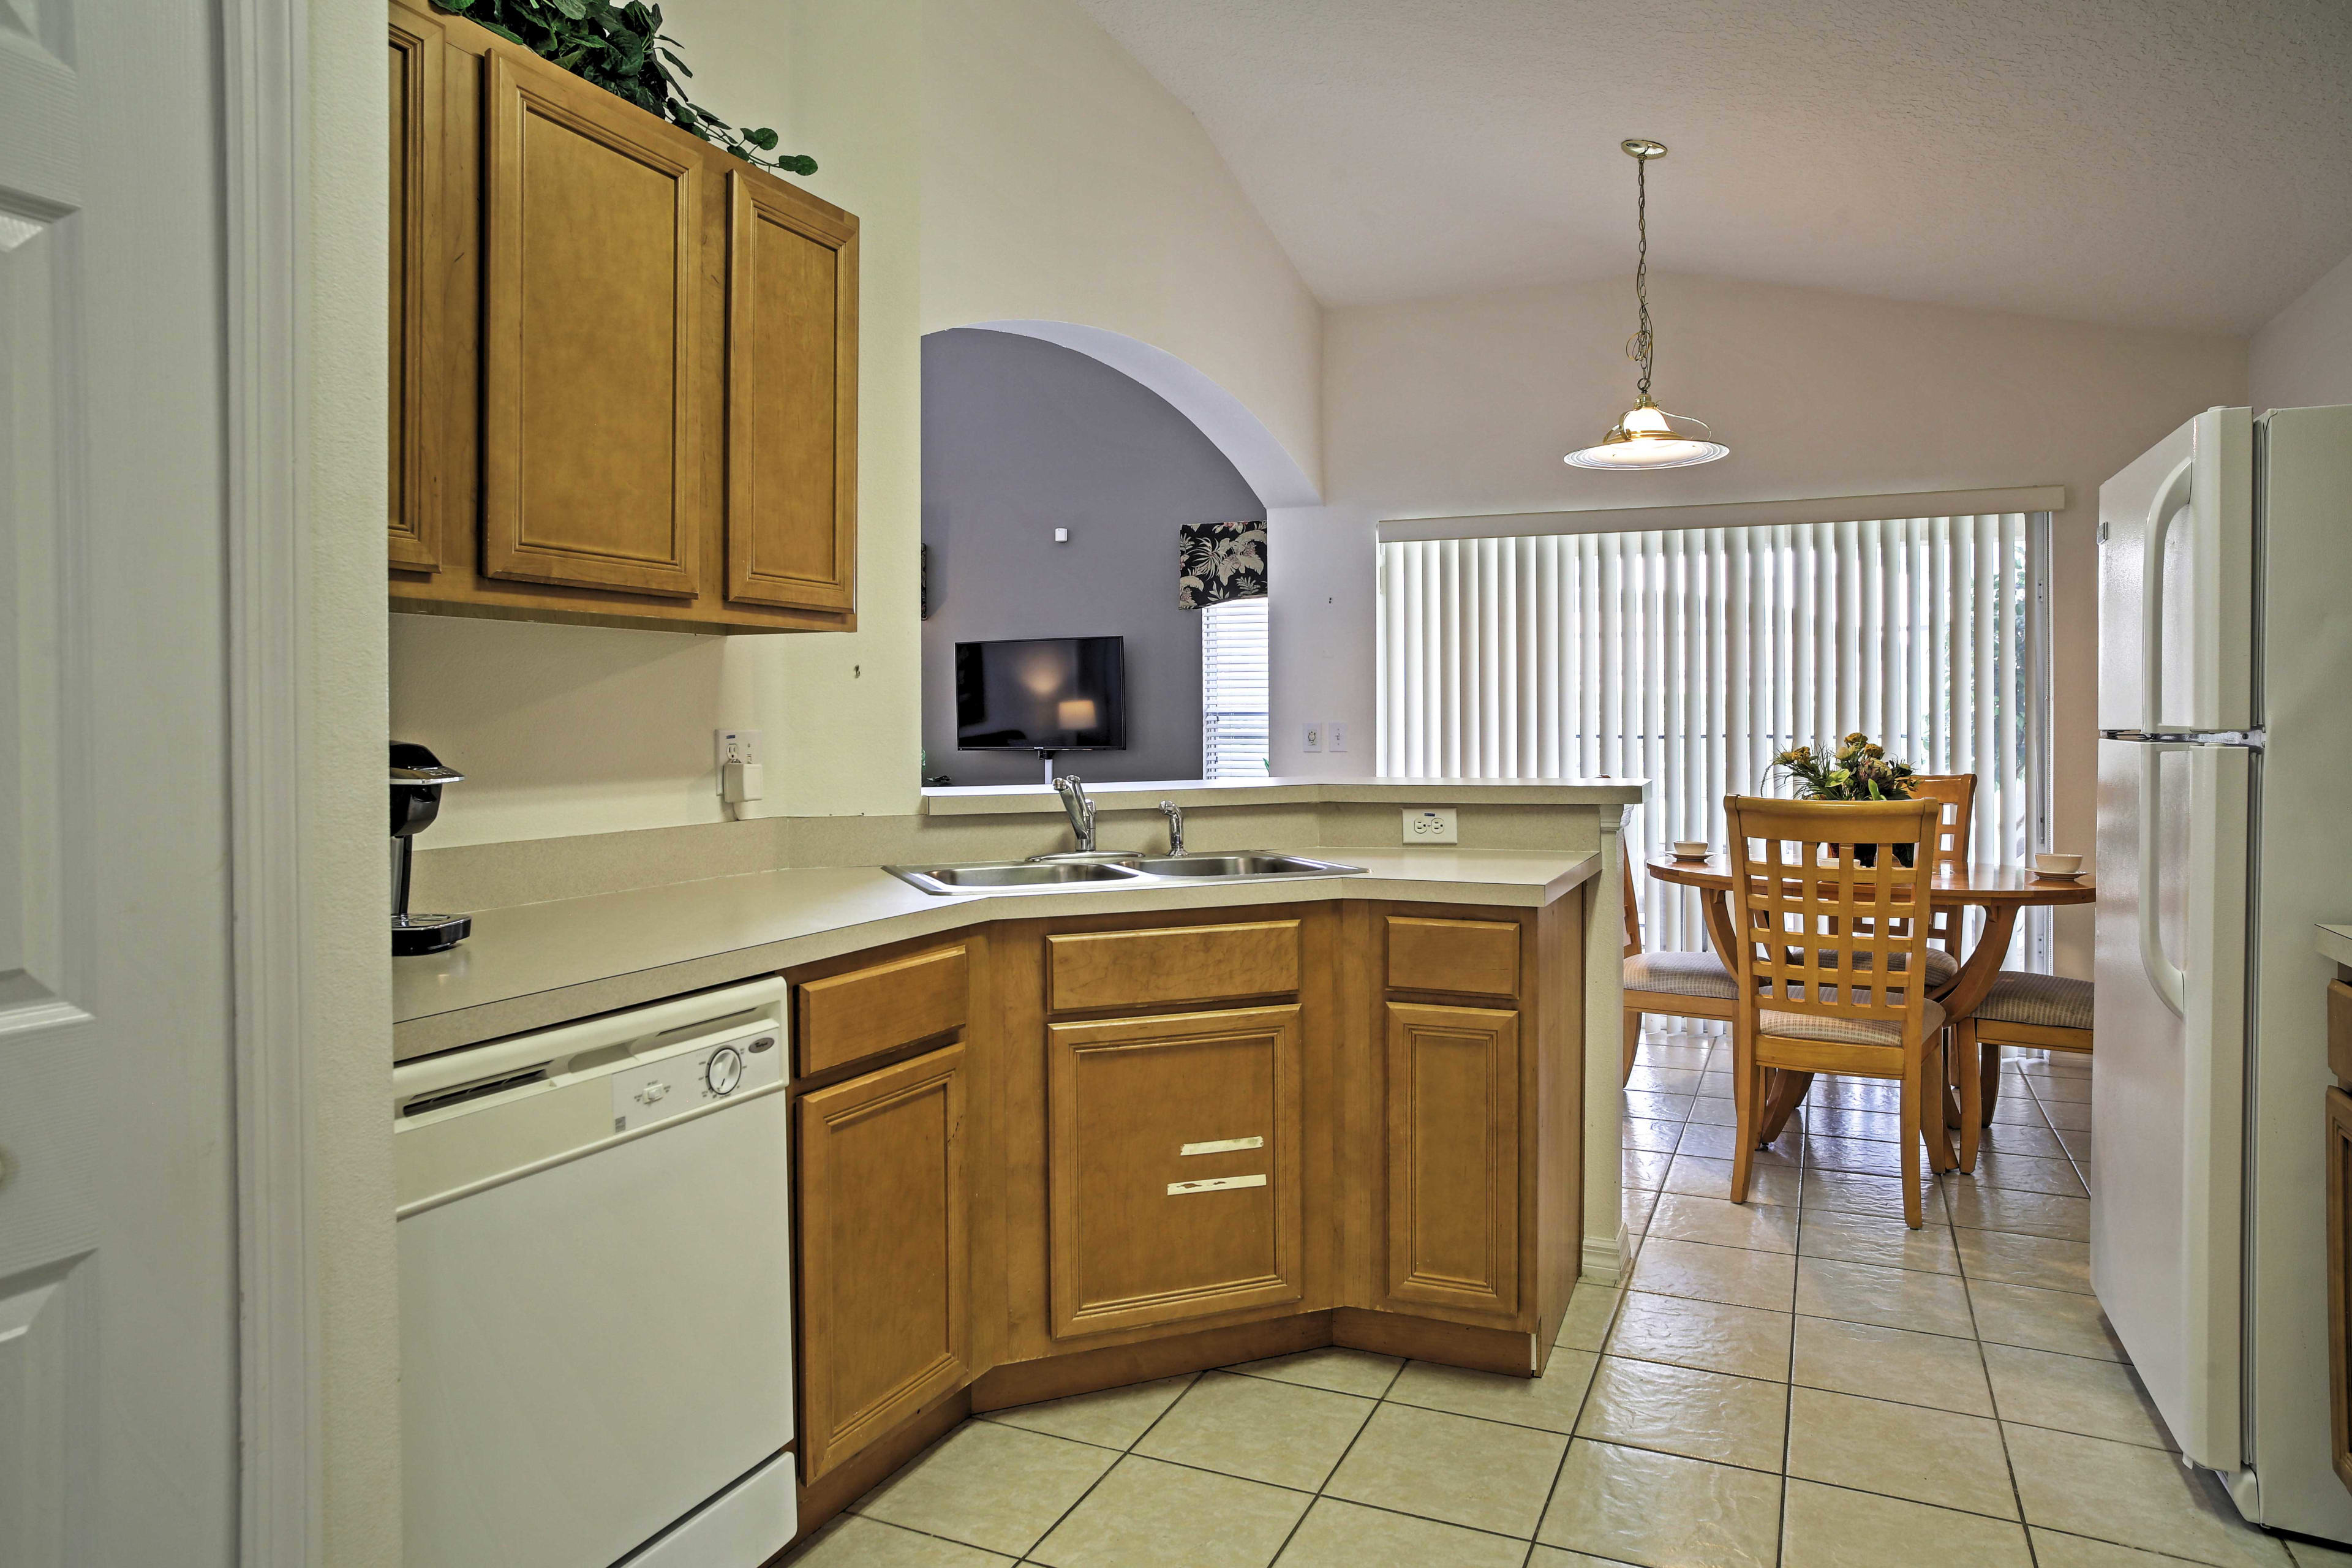 Whip-up your favorite flavors from home in this fully equipped kitchen.